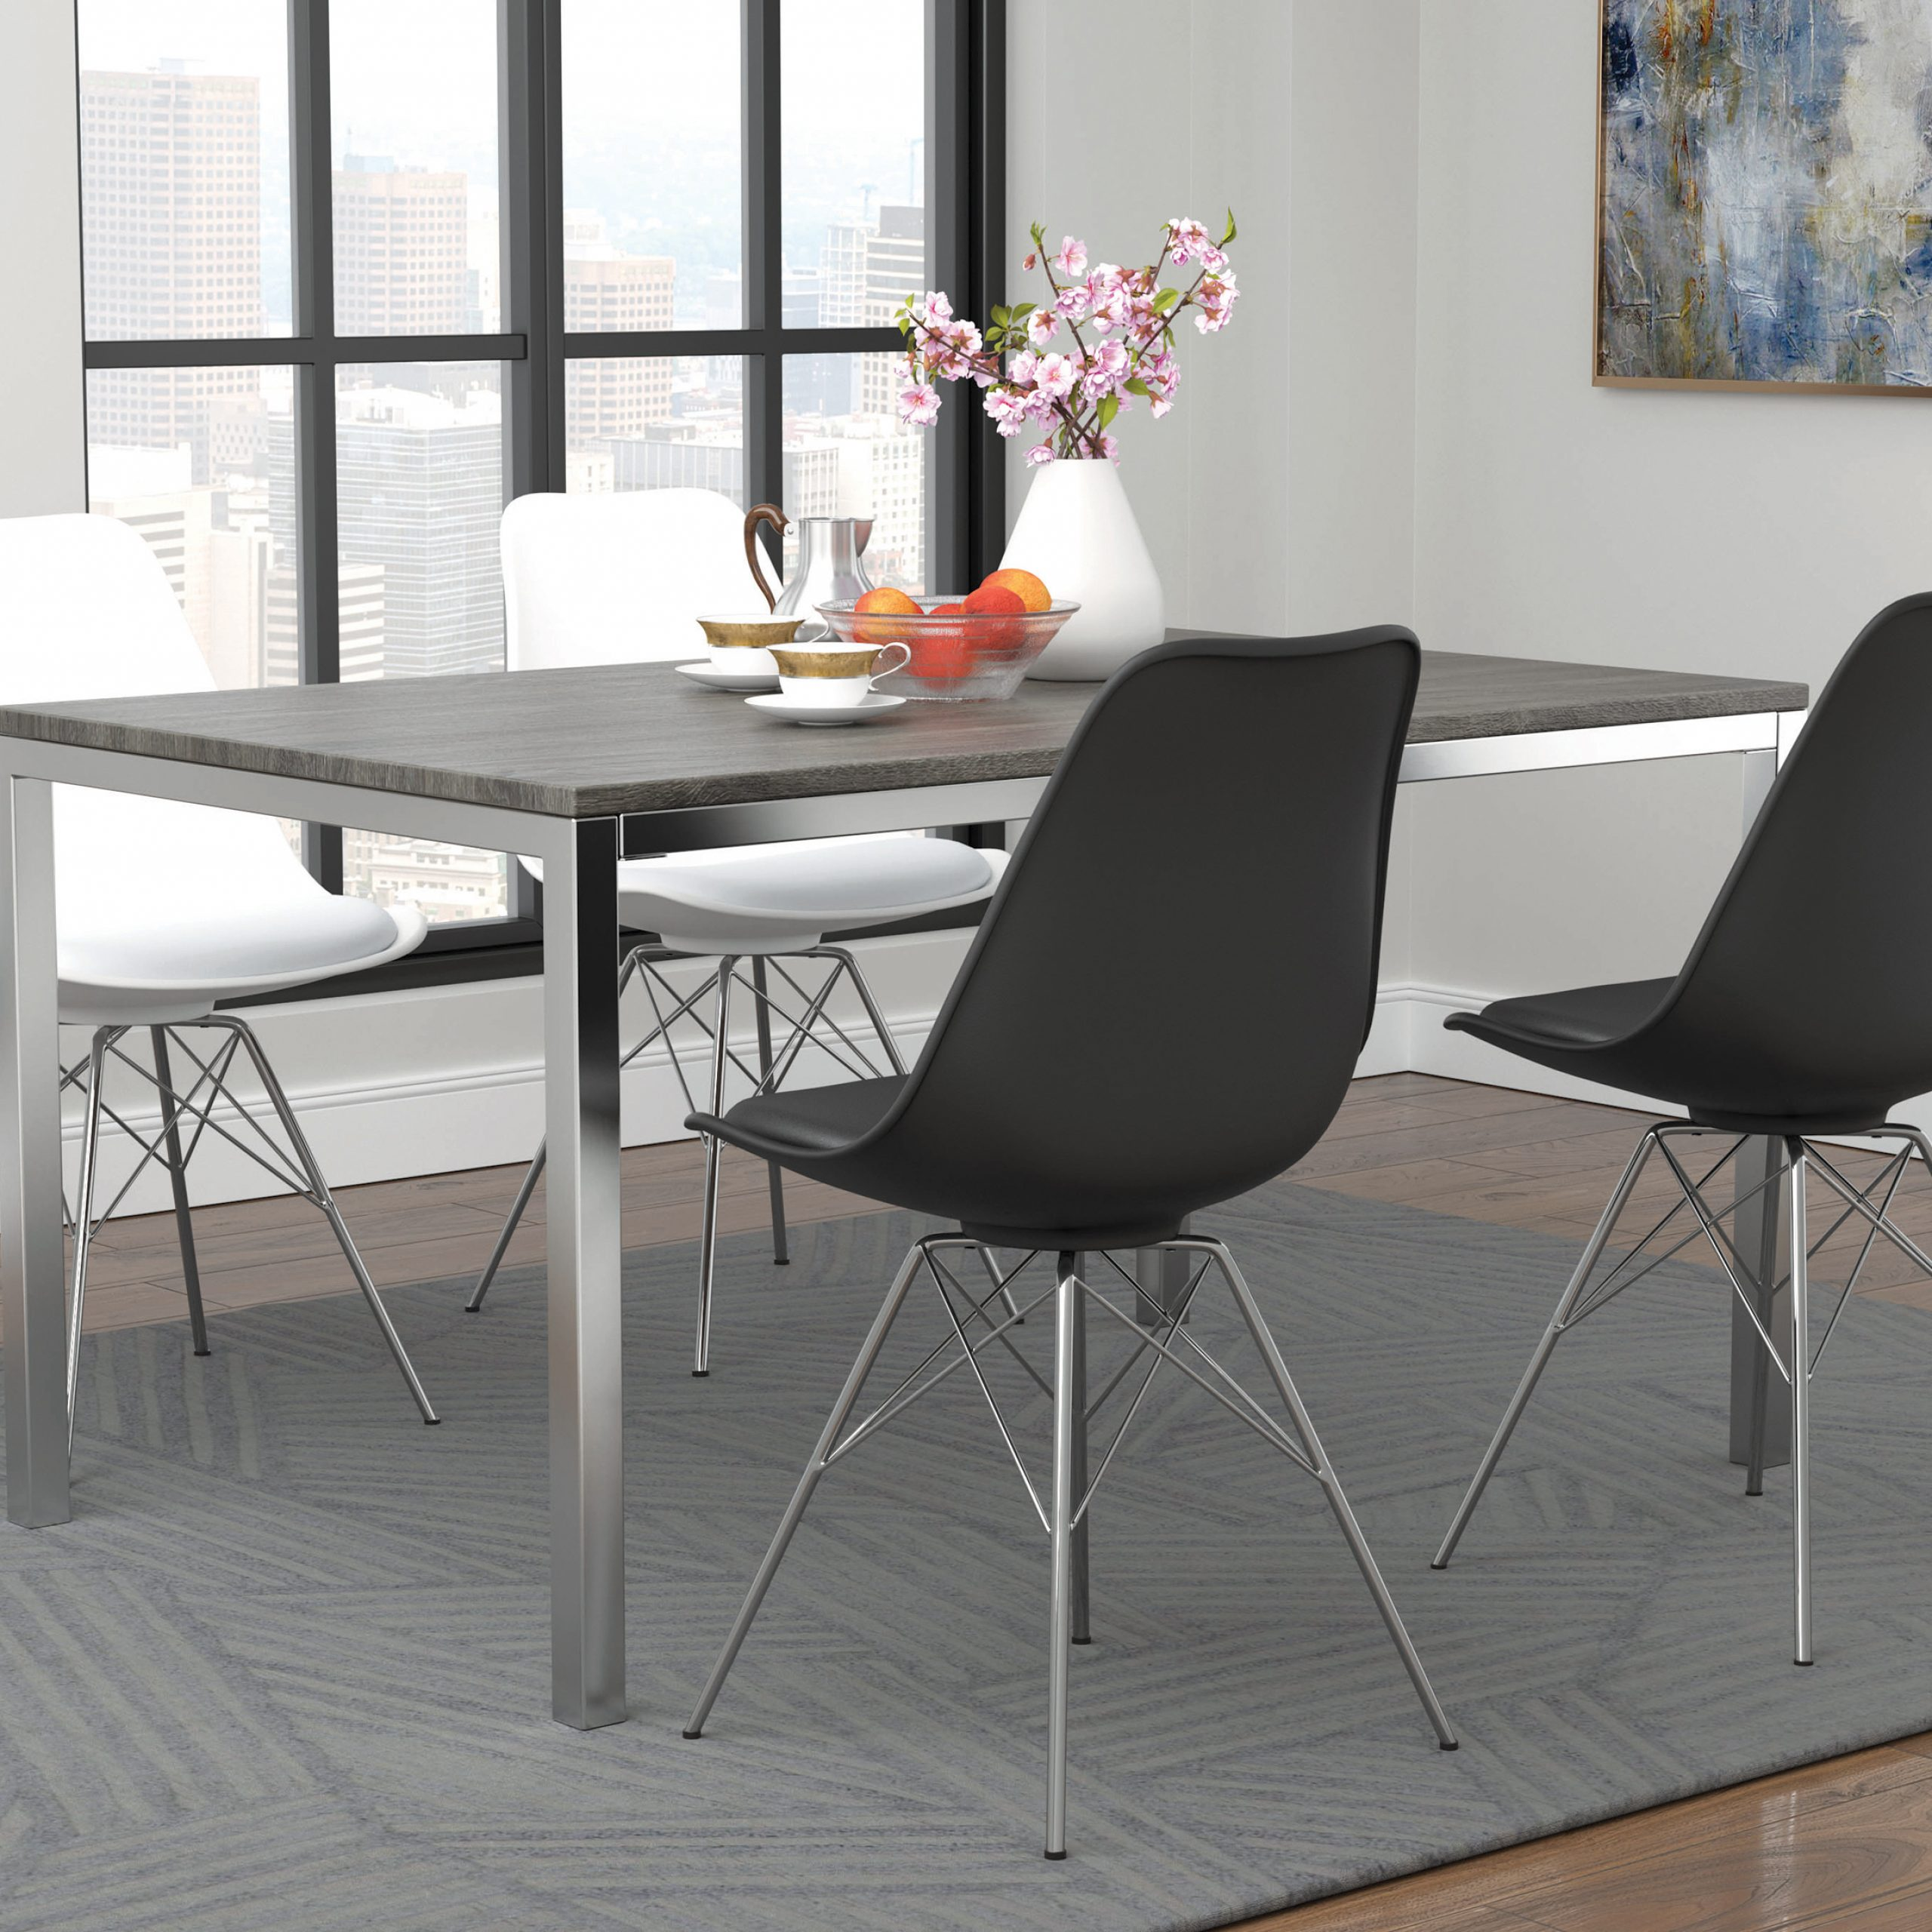 Latest Mckenzie Rectangular Dining Table Weathered Grey And Chrome For Chrome Contemporary Square Casual Dining Tables (View 18 of 30)